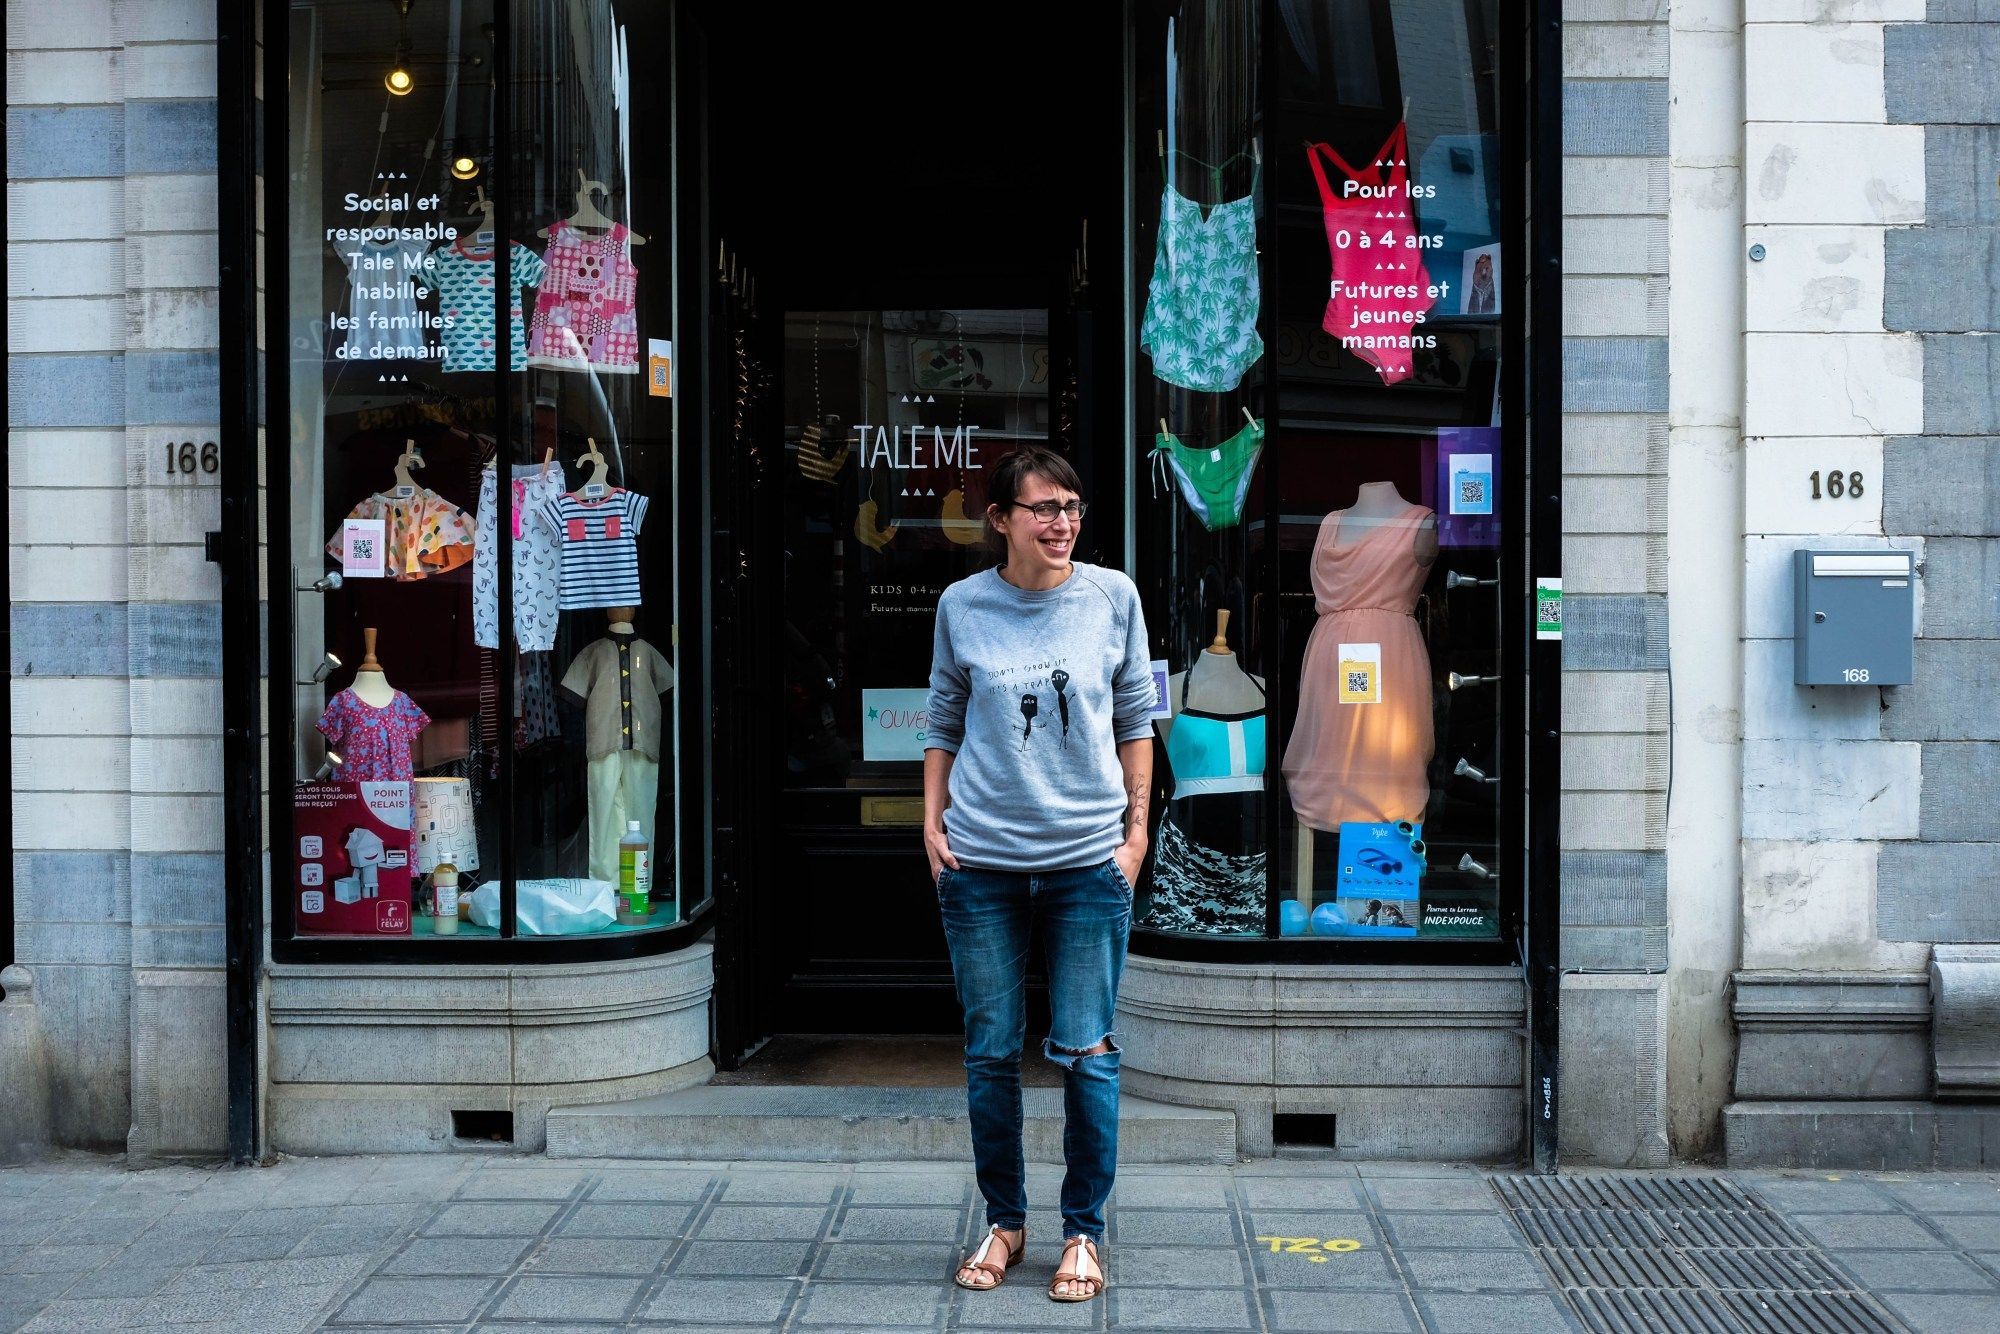 Tale me rent maternity and baby clothes in Brussels